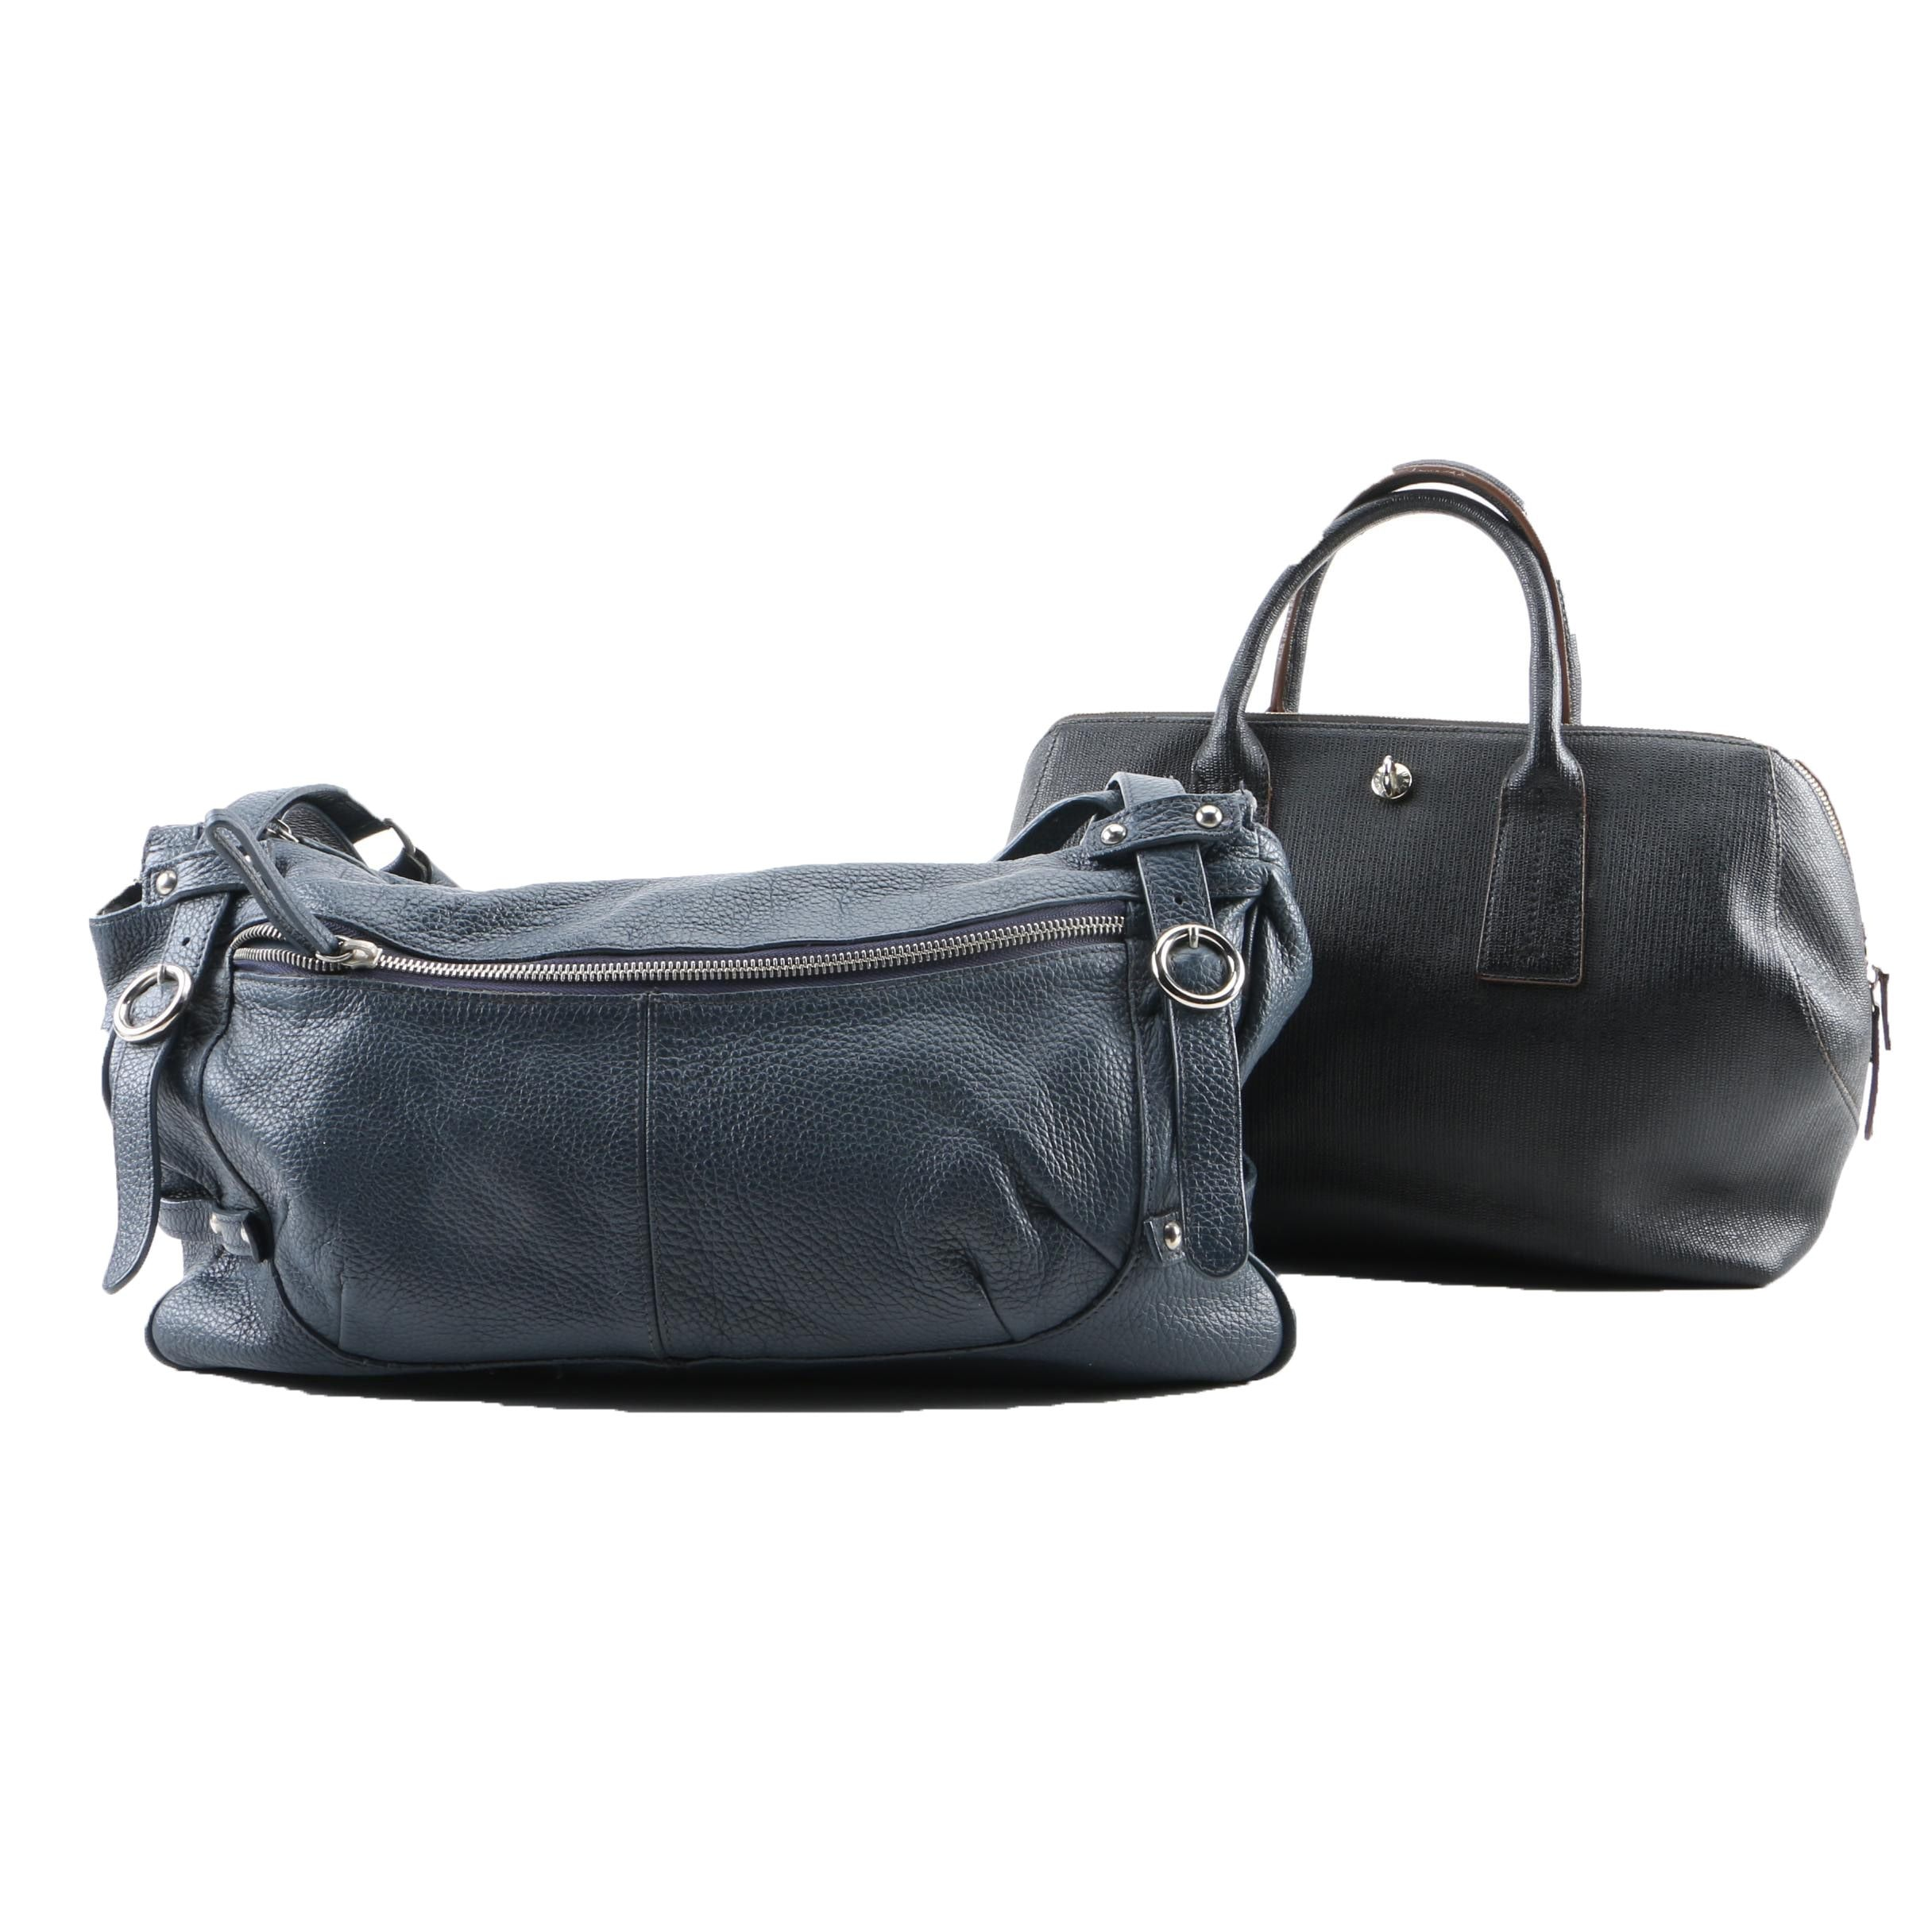 Furla Navy Blue Pebbled Leather and Black Coated Canvas Handbags